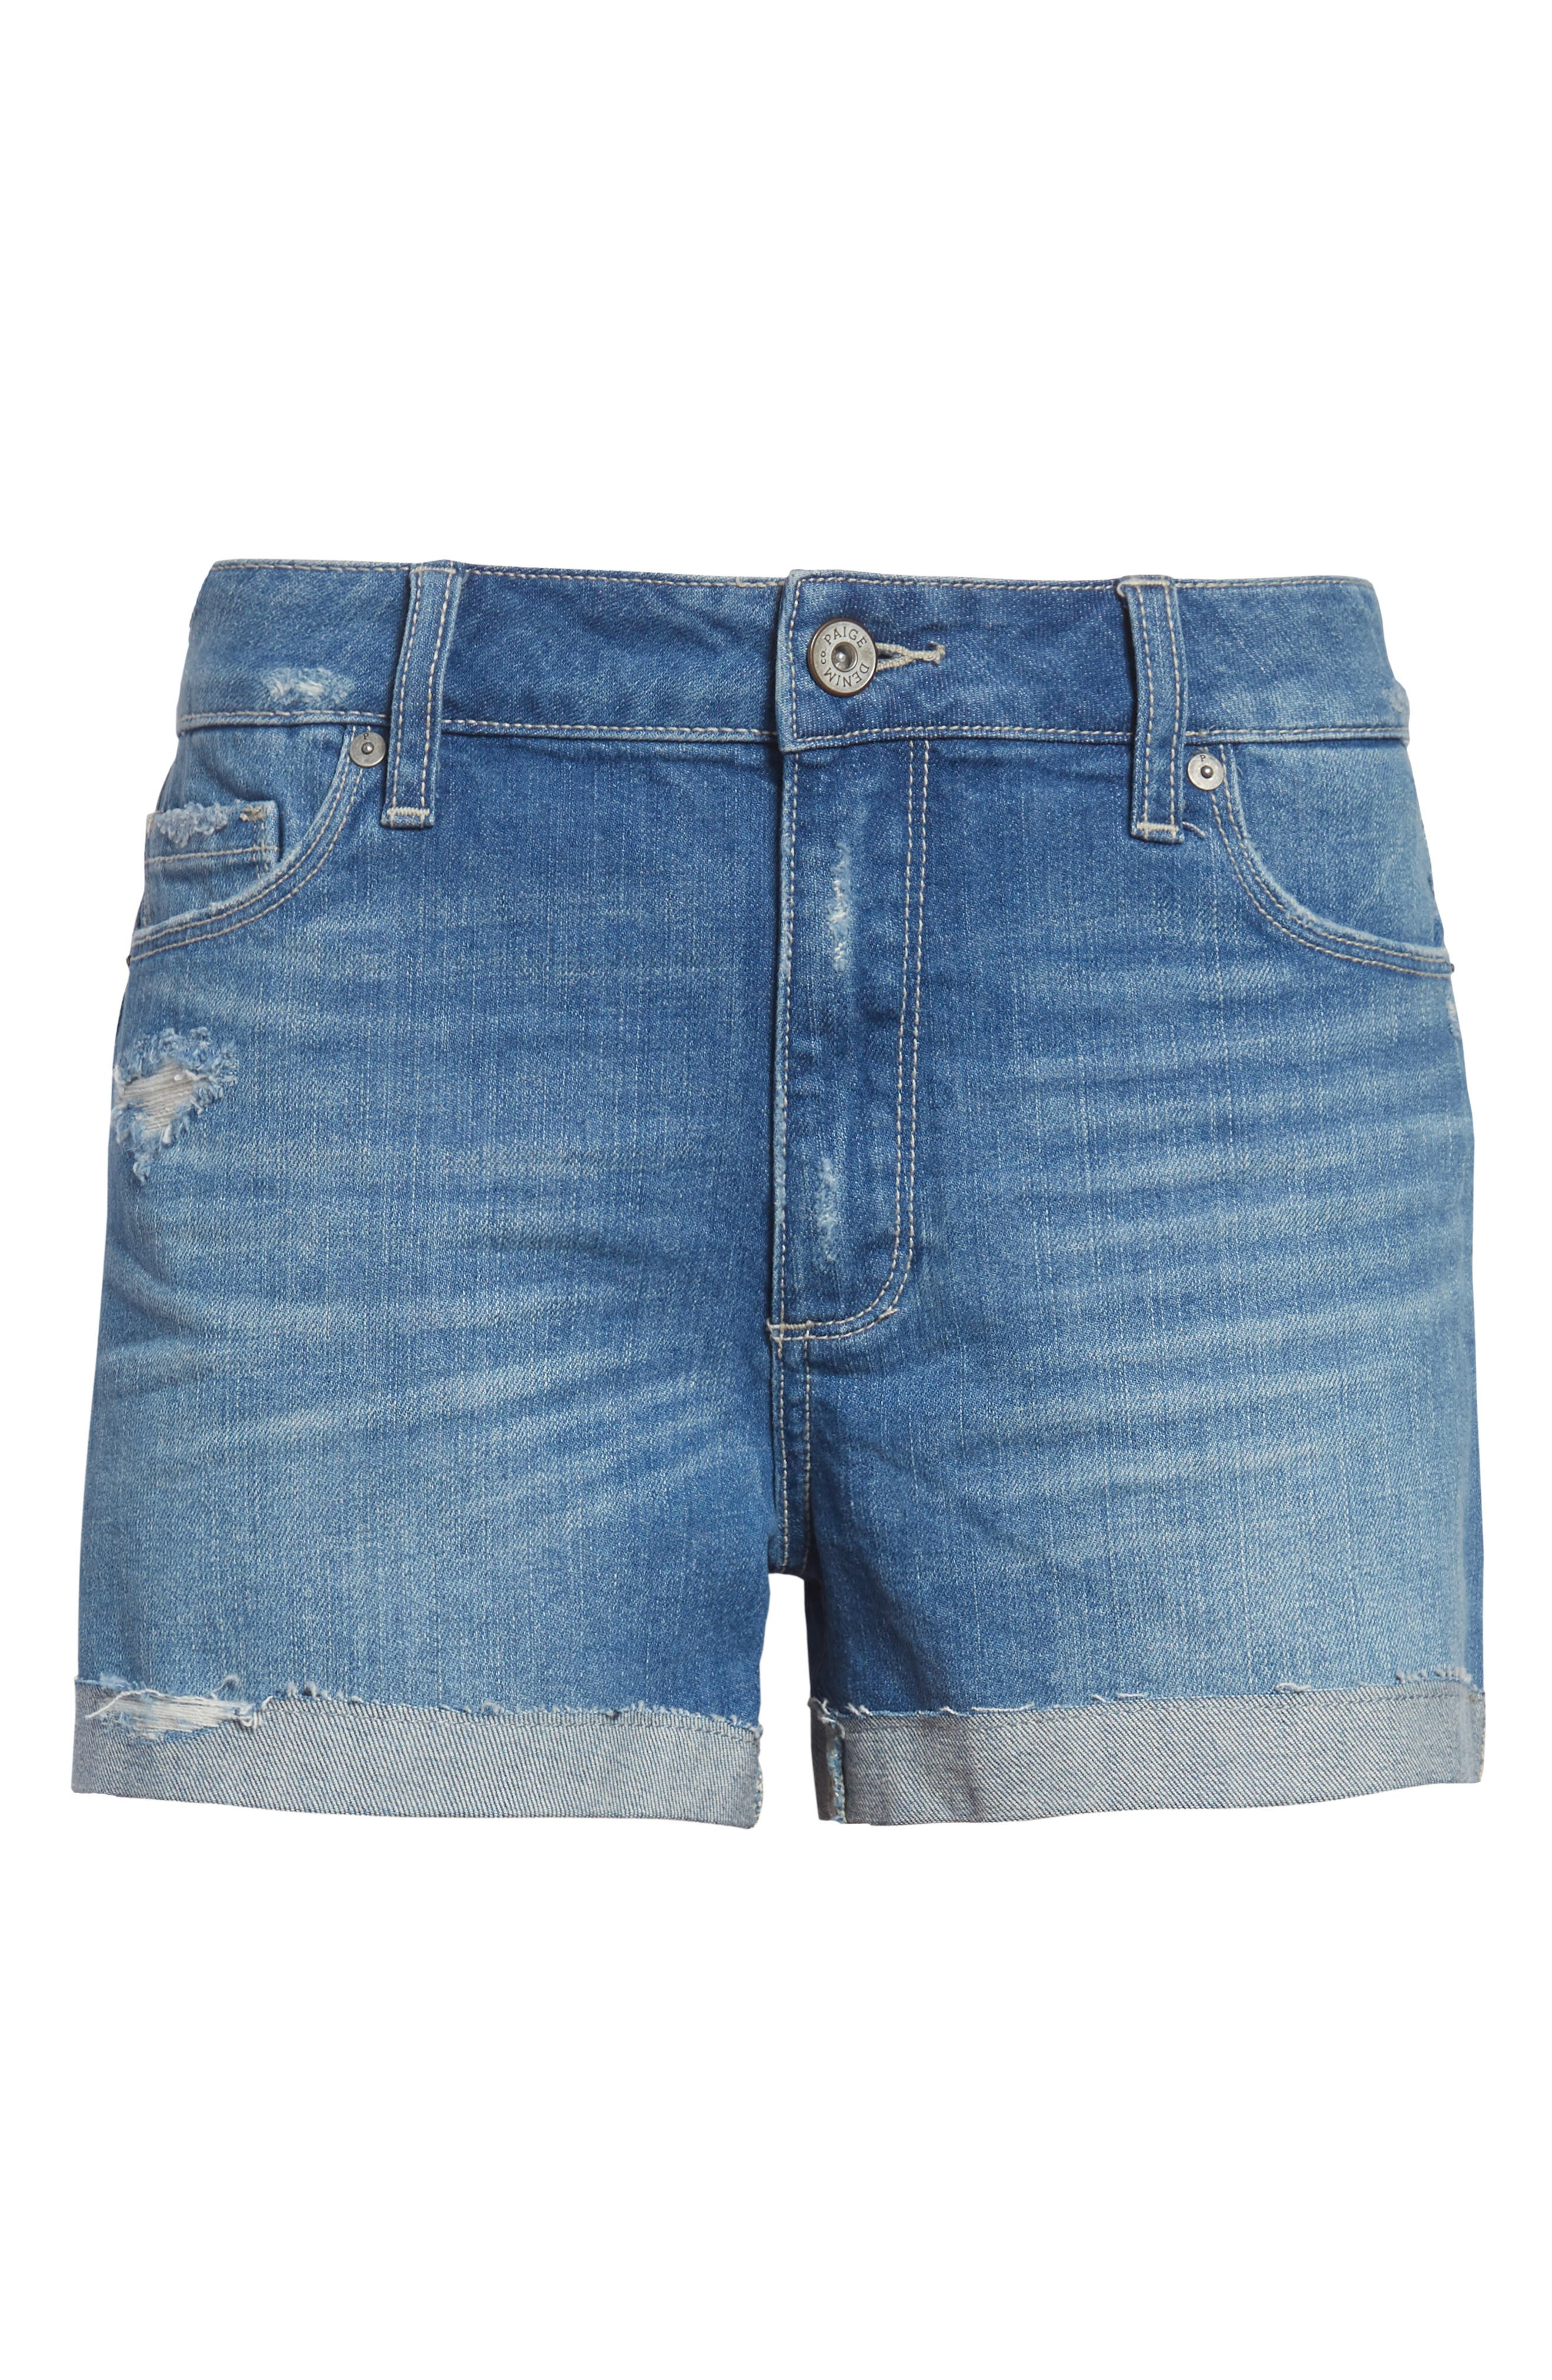 Jimmy Jimmy Cutoff Denim Shorts,                             Alternate thumbnail 3, color,                             FINNICK DESTRUCTED